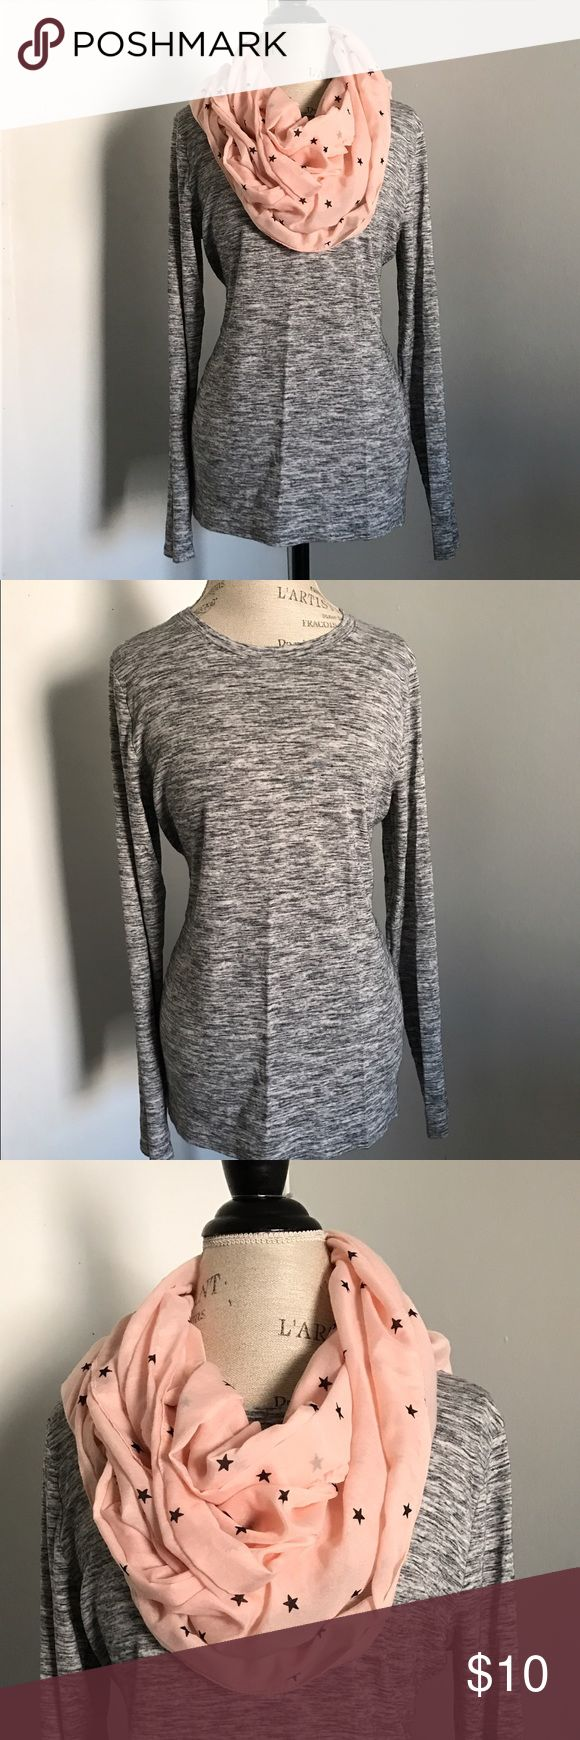 Top and infinity scarf Long sleeve top in good condition goes very nice with leggings infinity scarf in very good condition top size L Accessories Scarves & Wraps